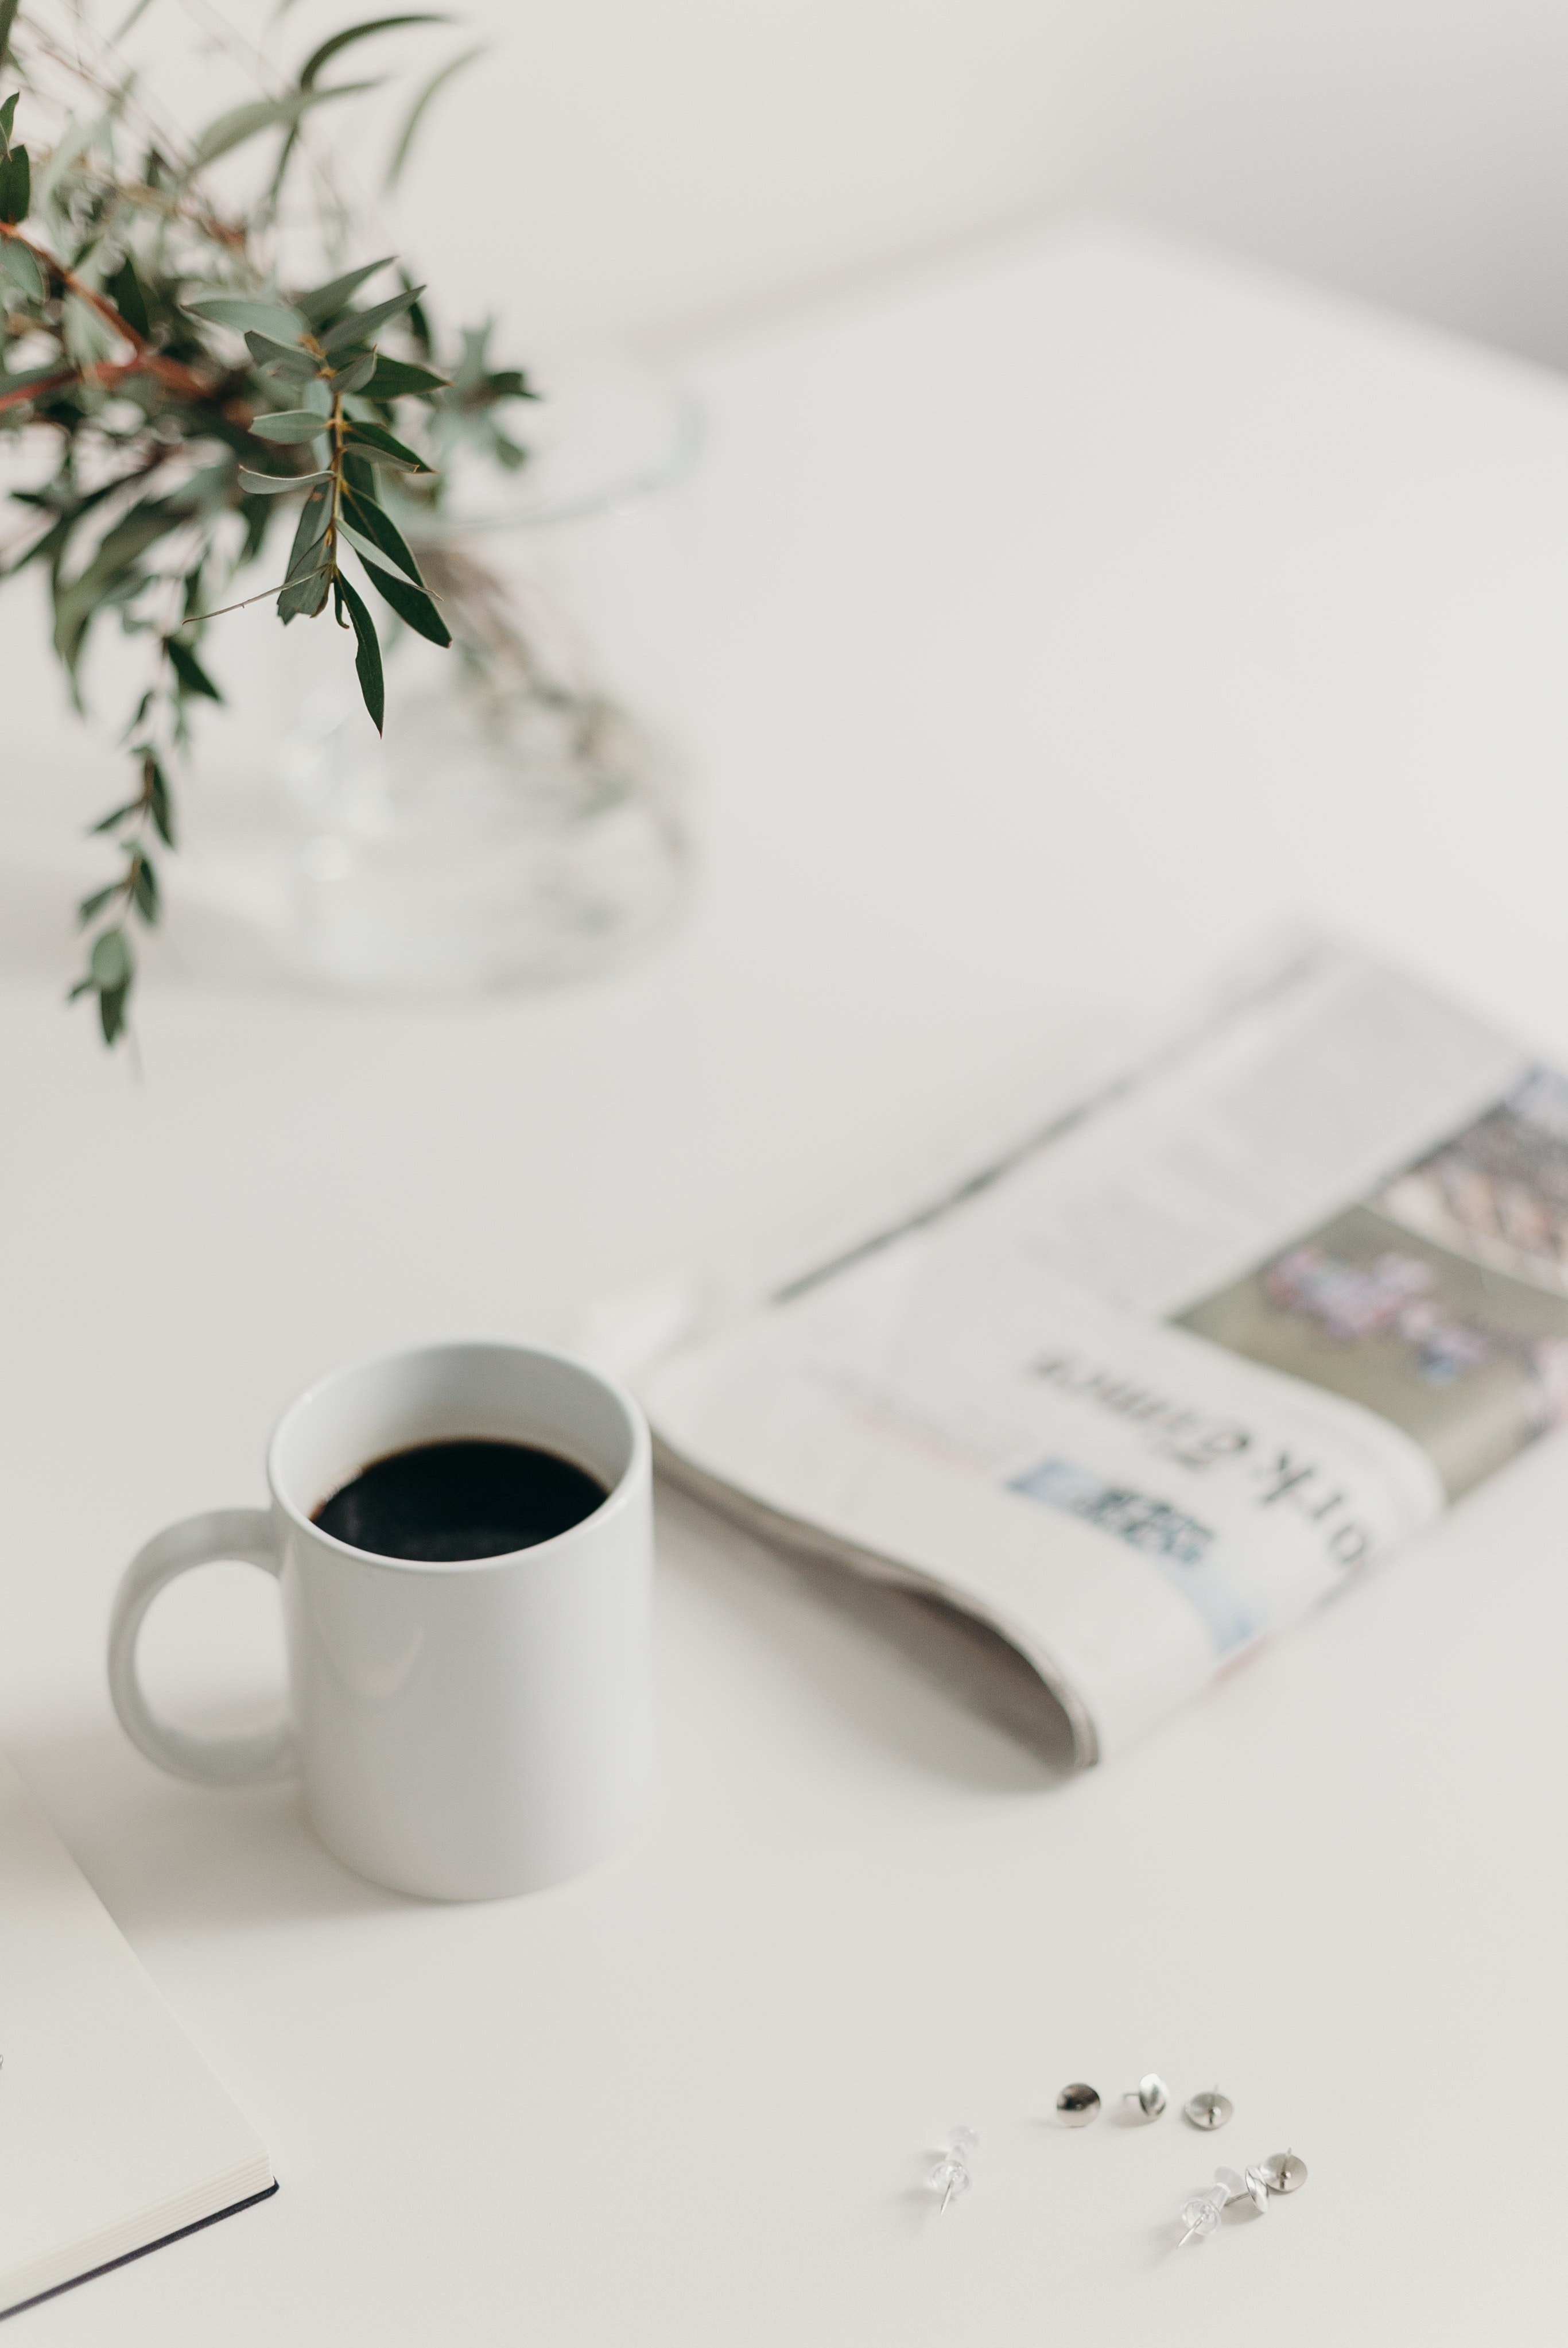 Coffee, plant and newspaper on table